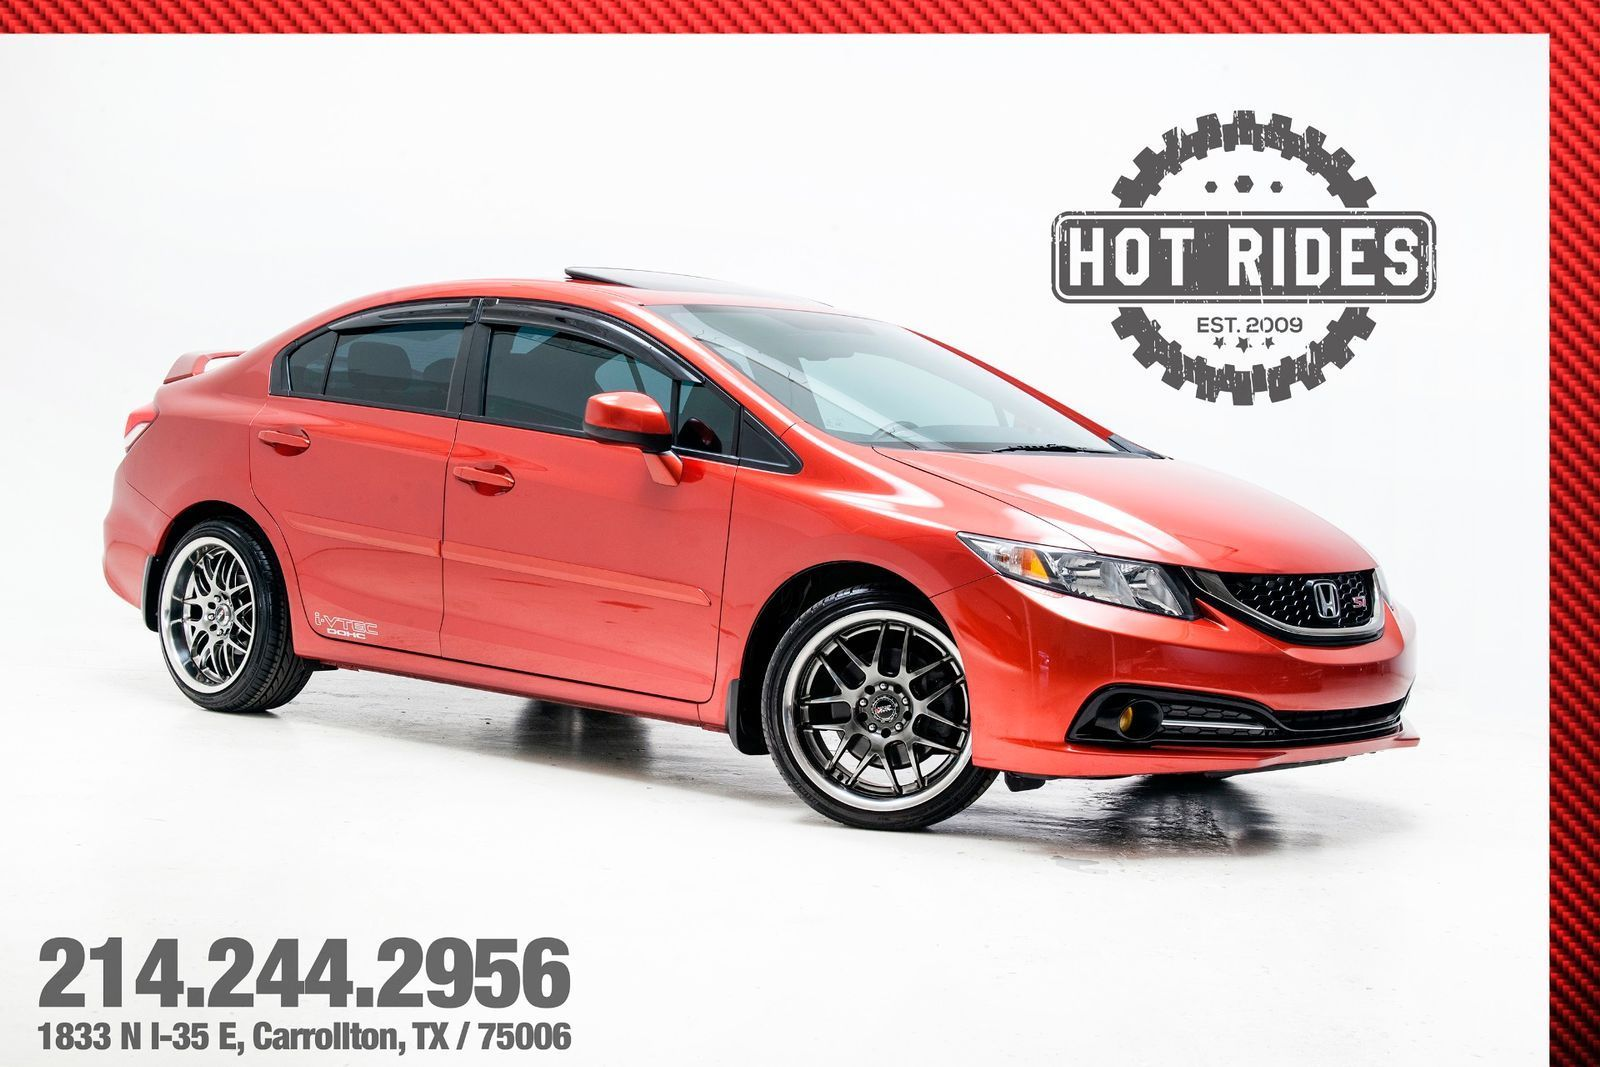 Awesome 2017 Honda Civic Type R Touring Rare Low Mileage Car In Like New Condition 2019